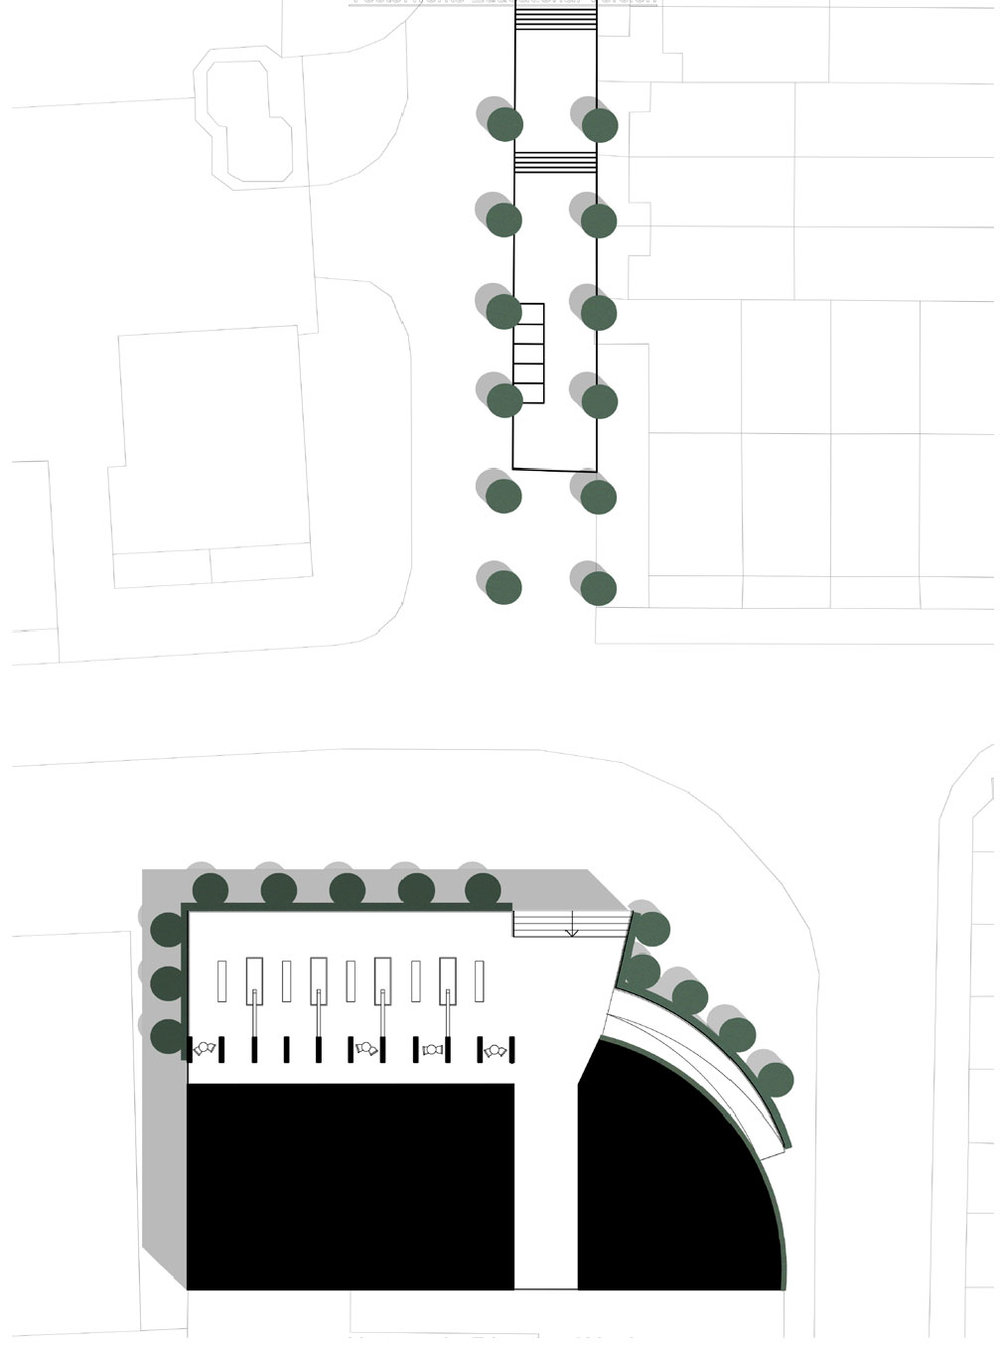 Building is set on a concrete plinth,its boundary marked by planting, creating a heightened sense of place. Green corridors guide visitors to the building from the main approaches.